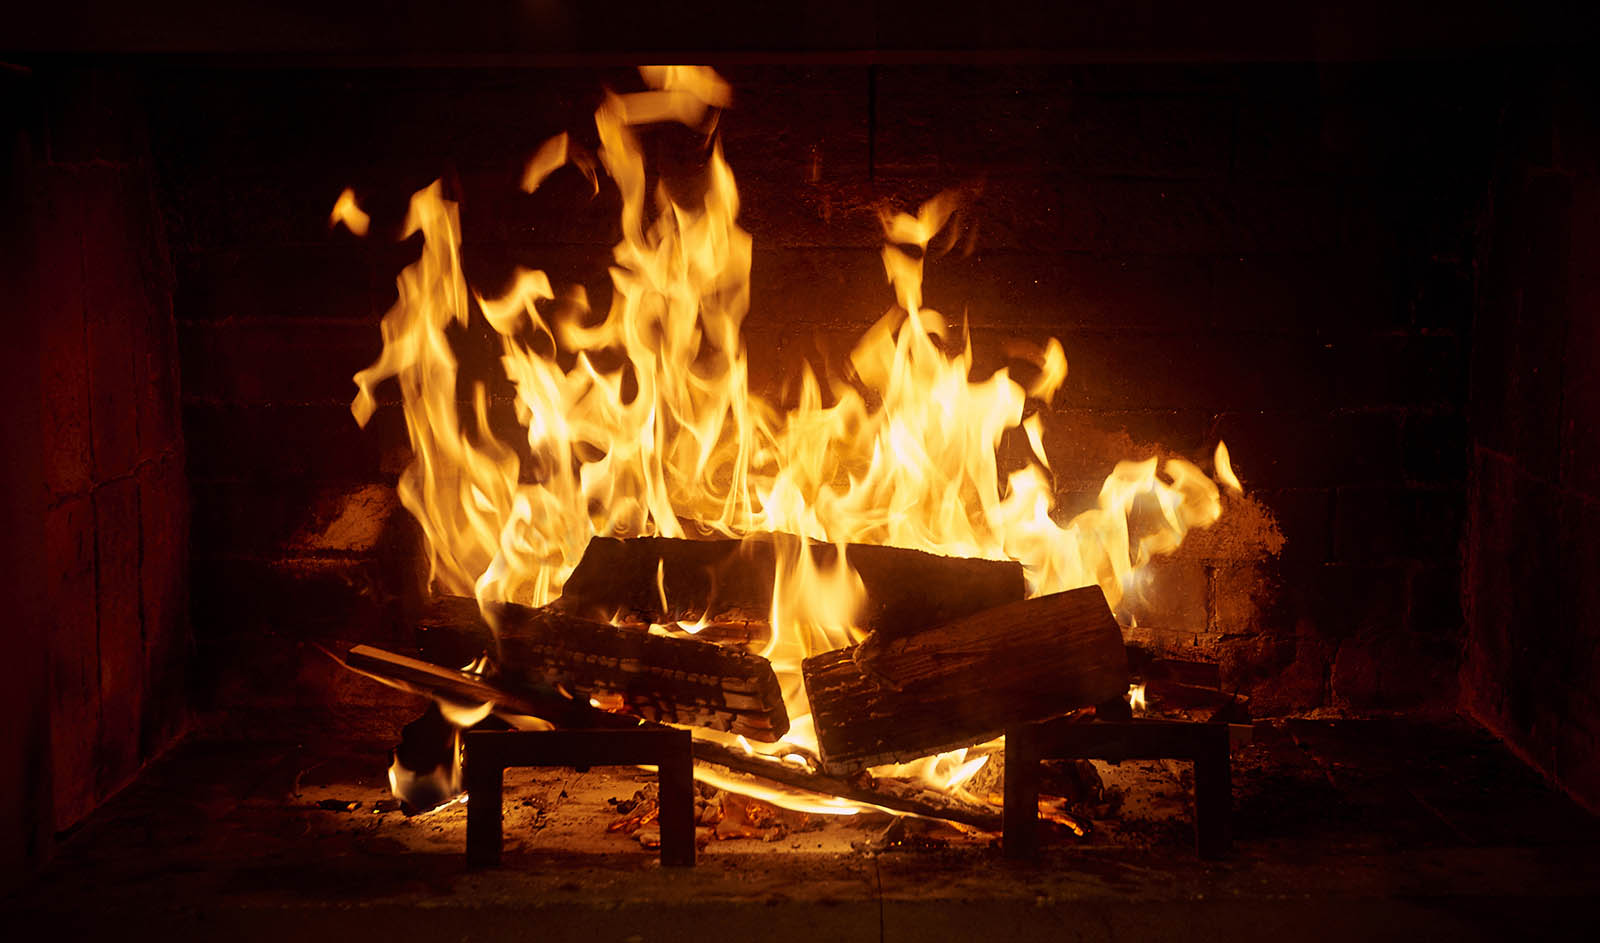 Fireplace 'Swap-Out' Improves Air Quality